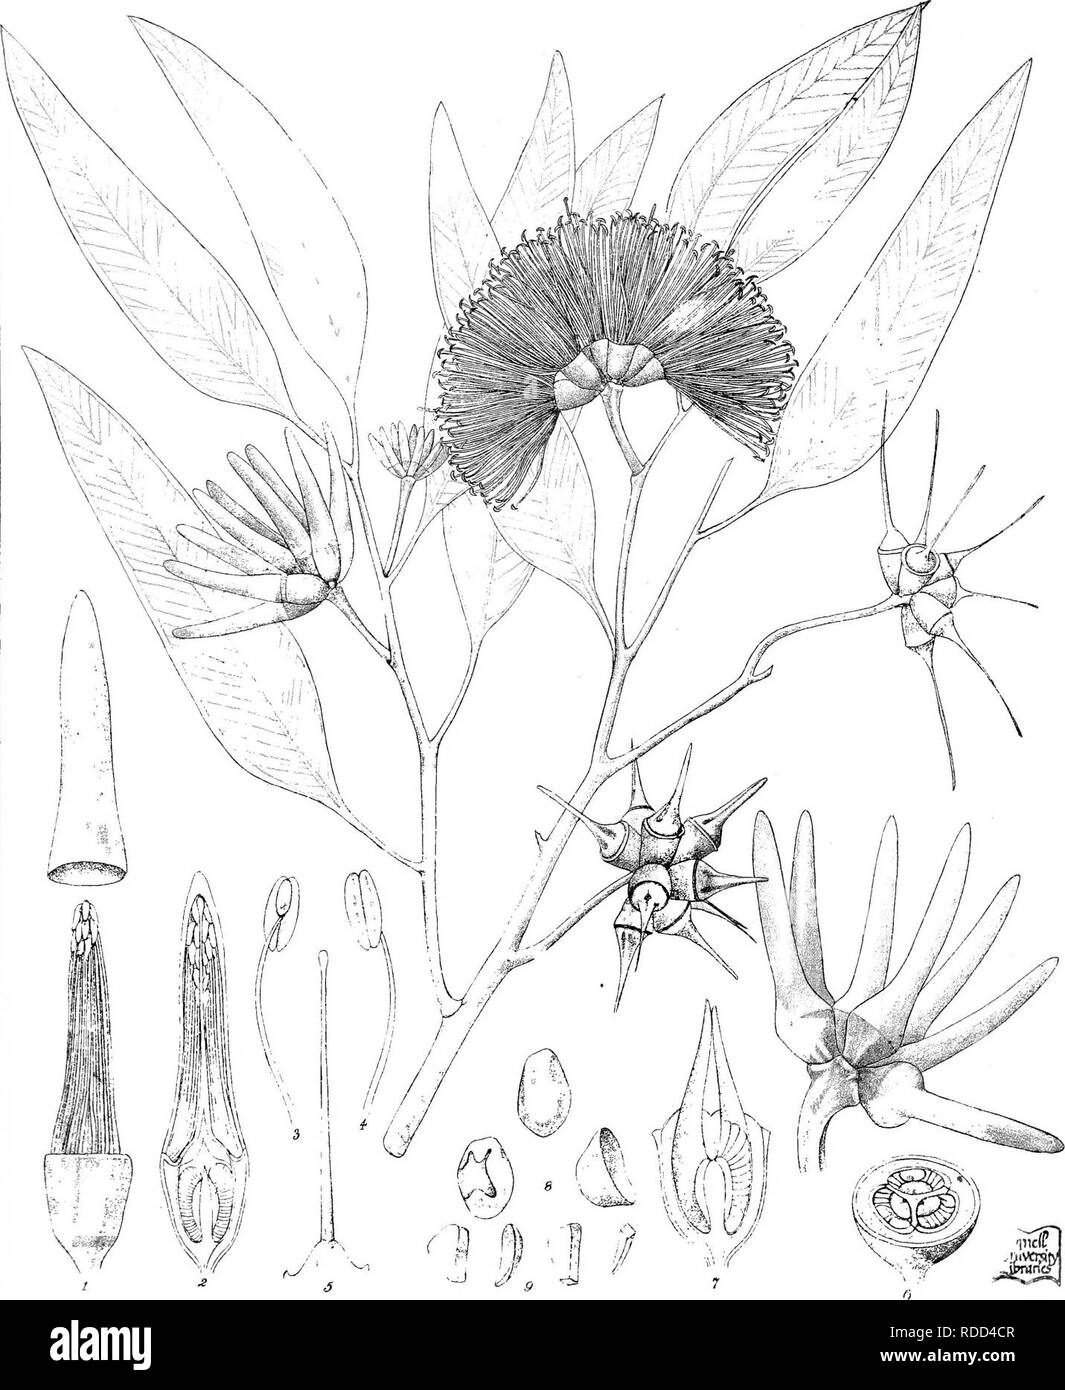 . Eucalyptographia. A descriptive atlas of the eucalypts of Australia and the adjoining islands;. Eucalyptus; Botany. Teat ie:. CTi-oedt. &C?LilJi. r : l'{ direxit. 0:e-T L^^loGc h:,g Oi'^ceMelb iBgiilfjpte rDiPiiteo LdMlbrdim. Please note that these images are extracted from scanned page images that may have been digitally enhanced for readability - coloration and appearance of these illustrations may not perfectly resemble the original work.. Mueller, Ferdinand von, 1825-1896. Melbourne, J. Ferres, Govt. Print; [etc. ,etc. ] - Stock Image